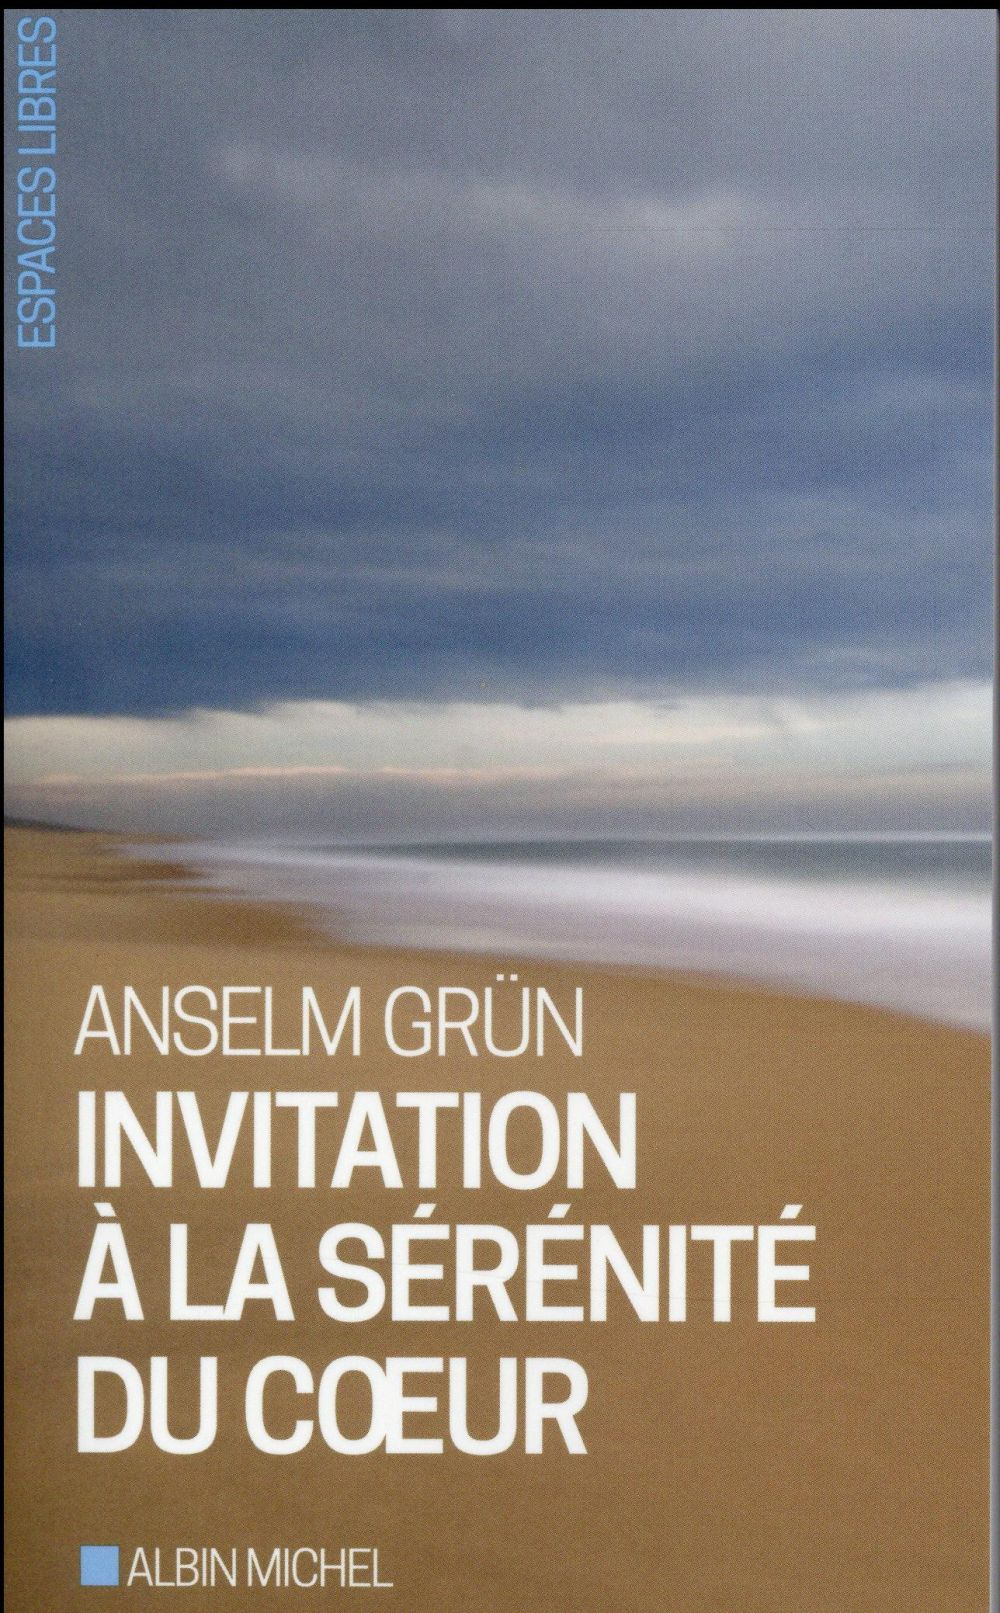 INVITATION A LA SERENITE DU COEUR